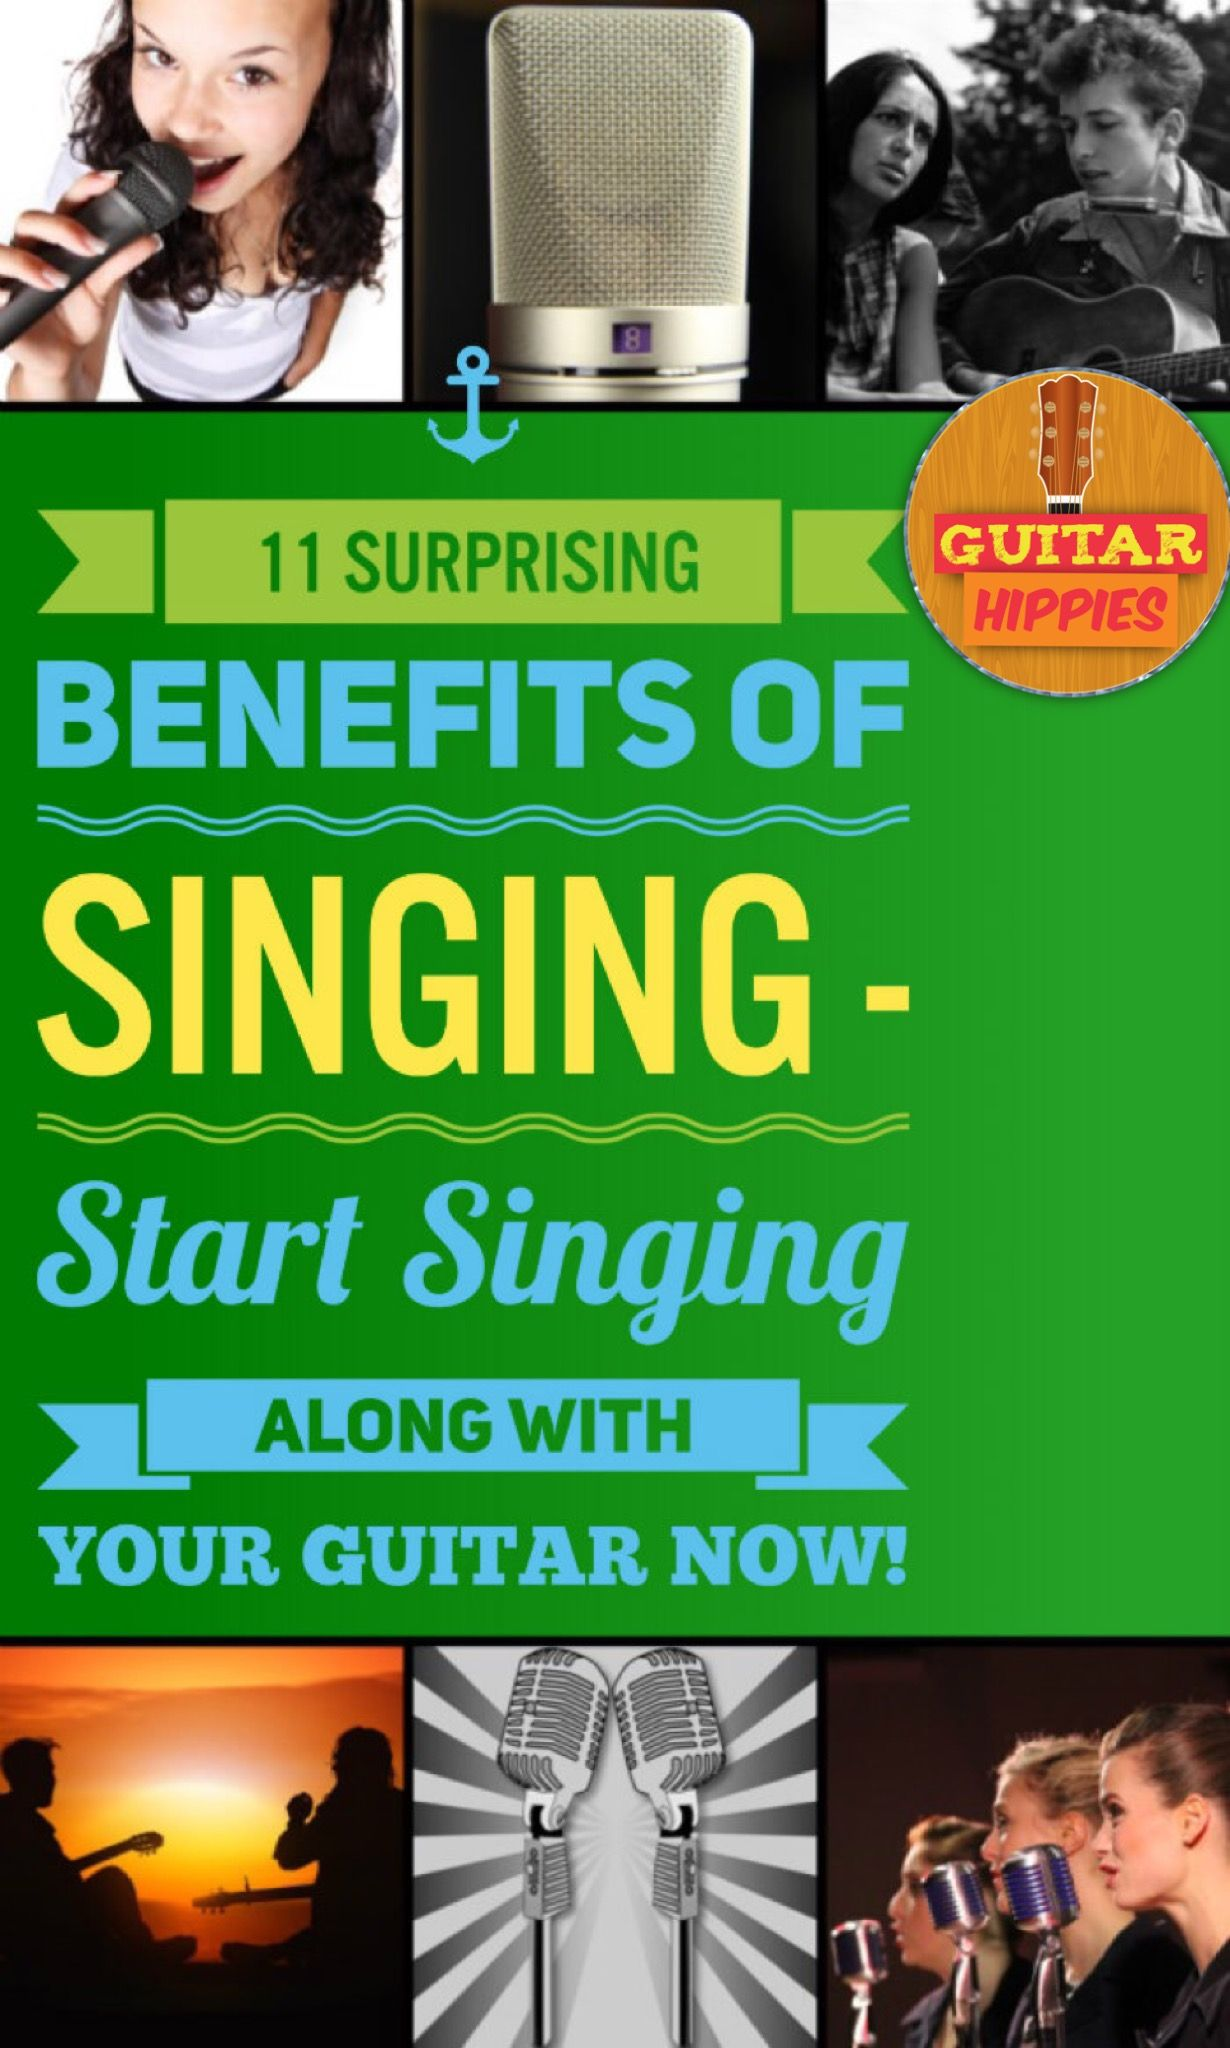 The 11 Most Surprising Benefits Of SINGING You Didn't Know